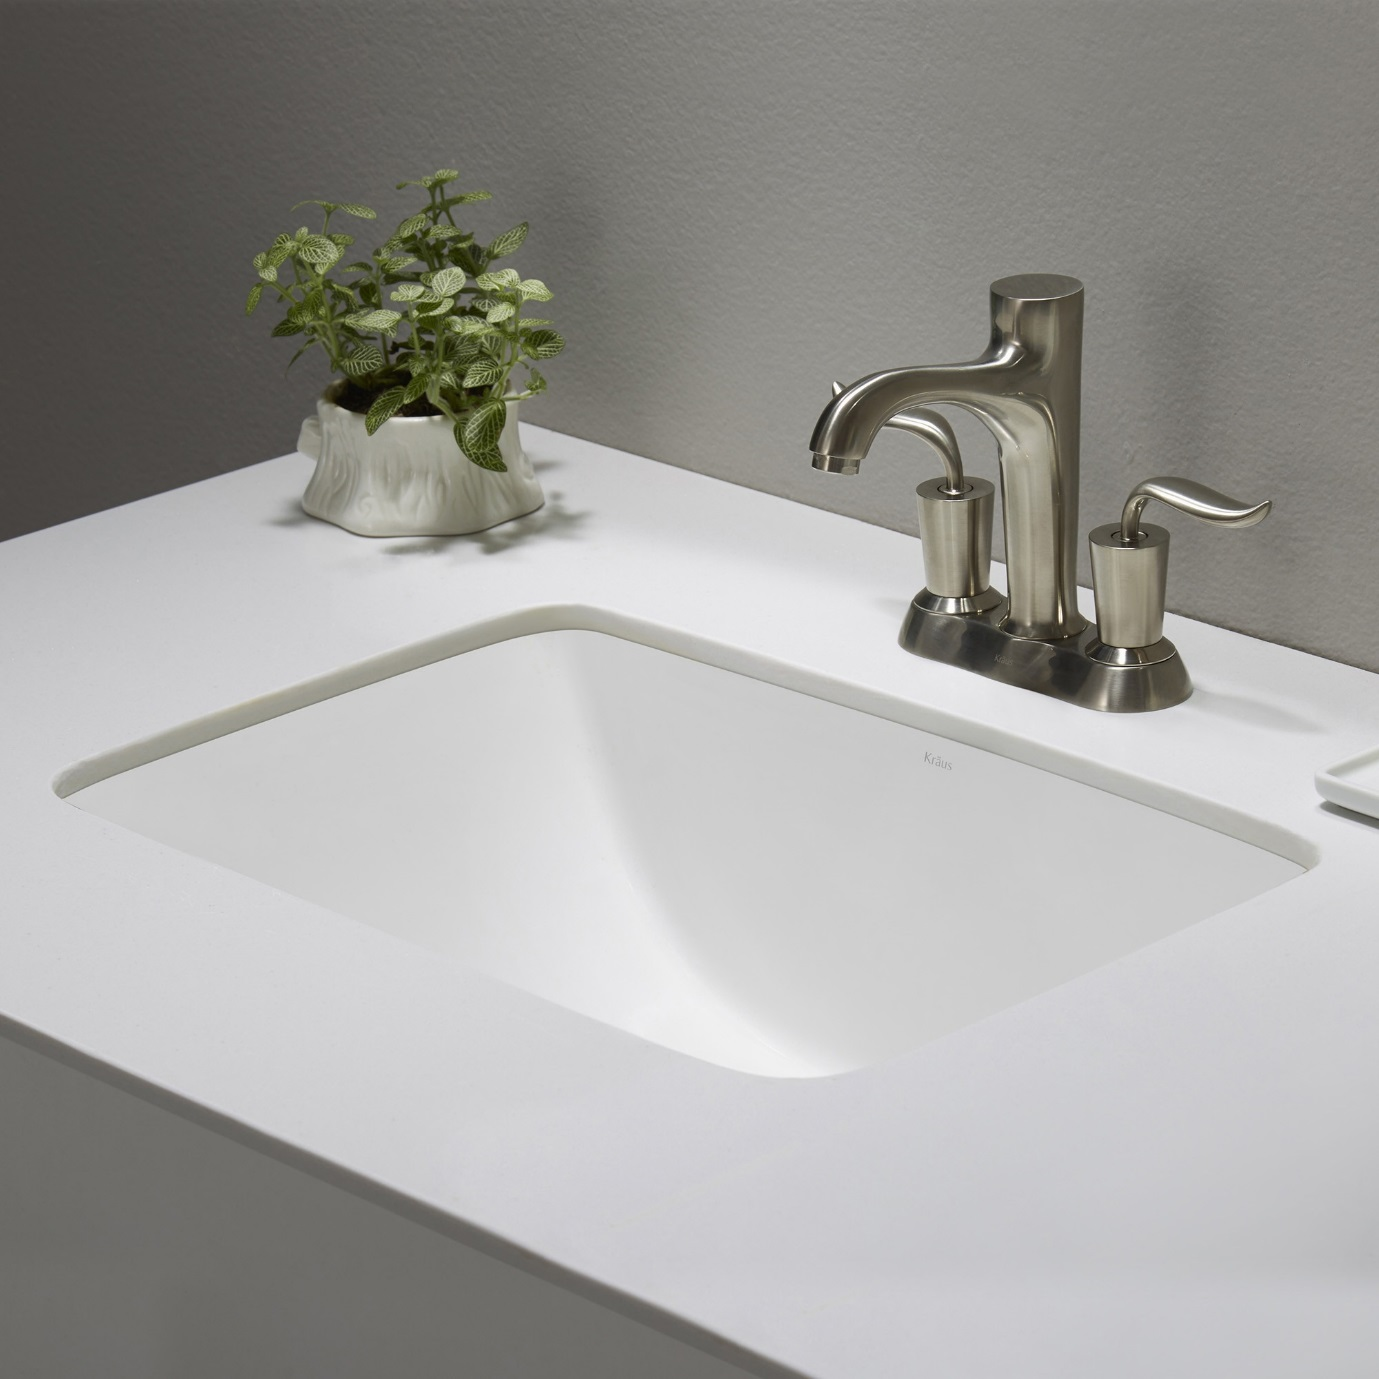 Under-mounted Sink for That Smooth Look